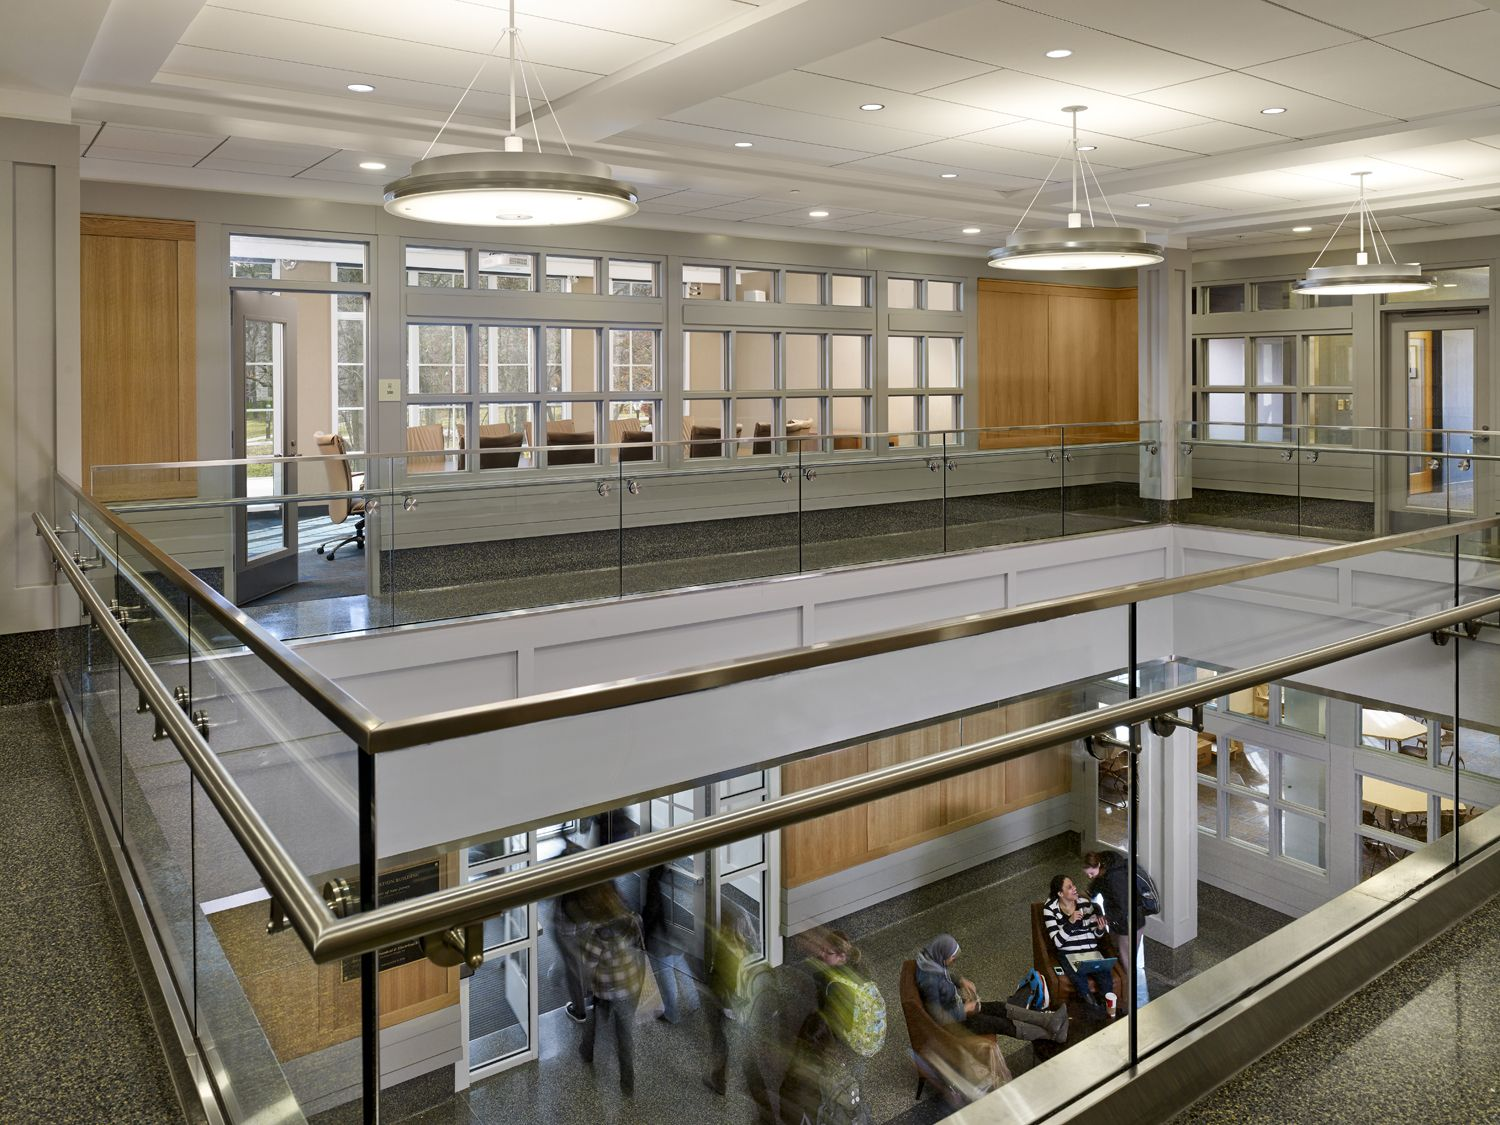 The College of New Jersey School of Business Architecture Interior